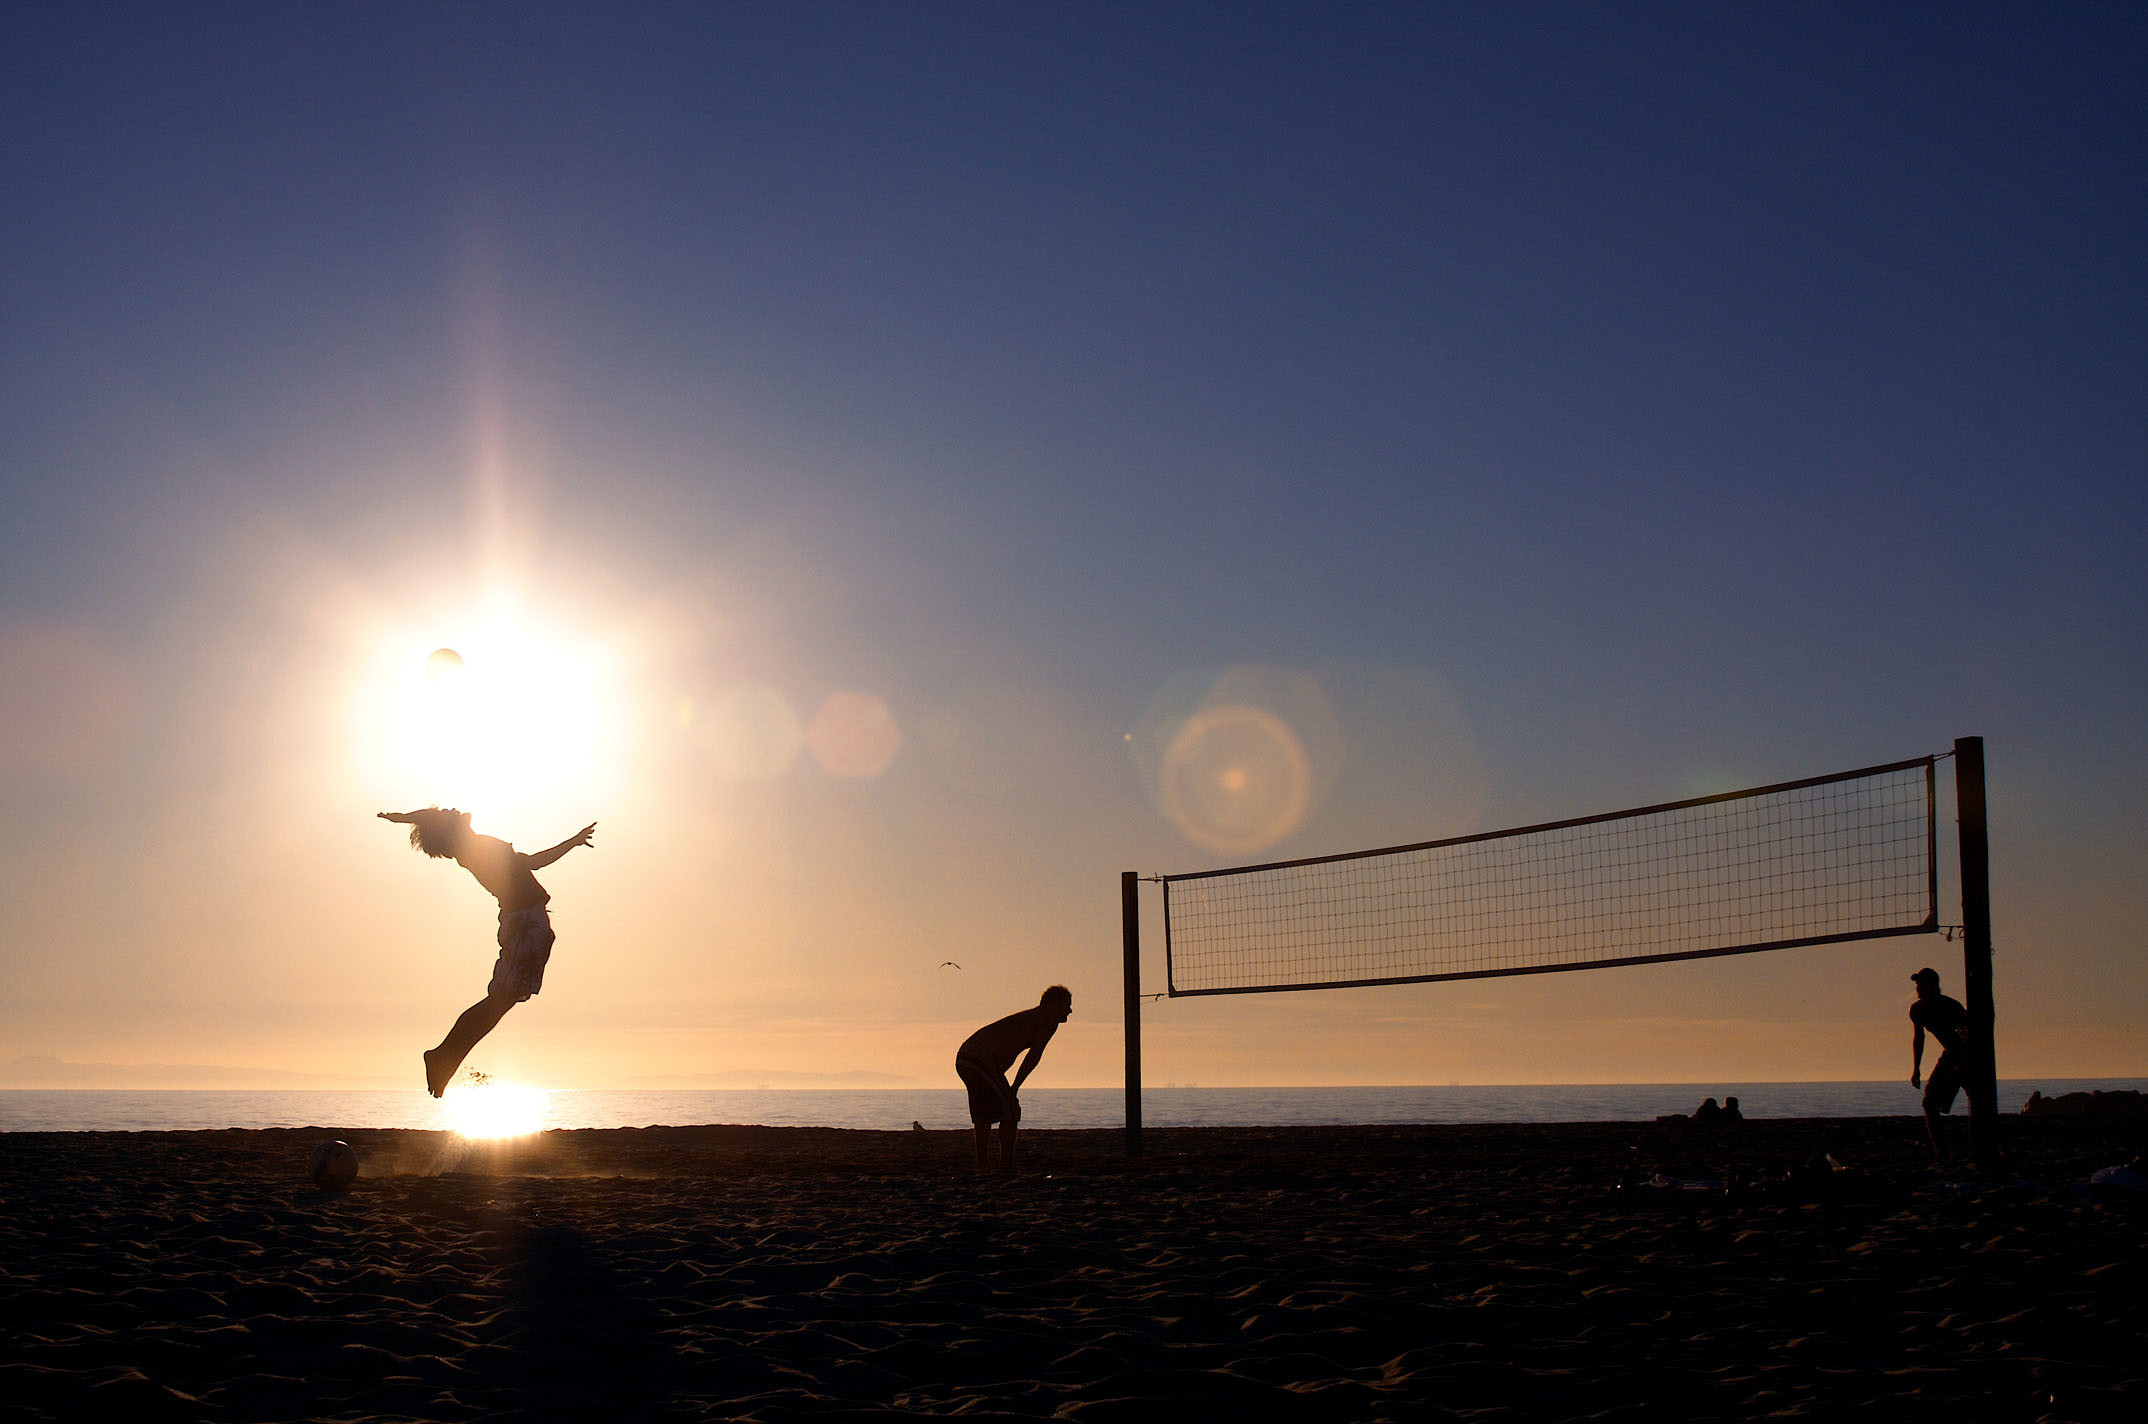 Beach Volleyball HD Wallpapers – THIS Wallpaper | Adorable Wallpapers |  Pinterest | Beach volleyball, Volleyball and Wallpaper